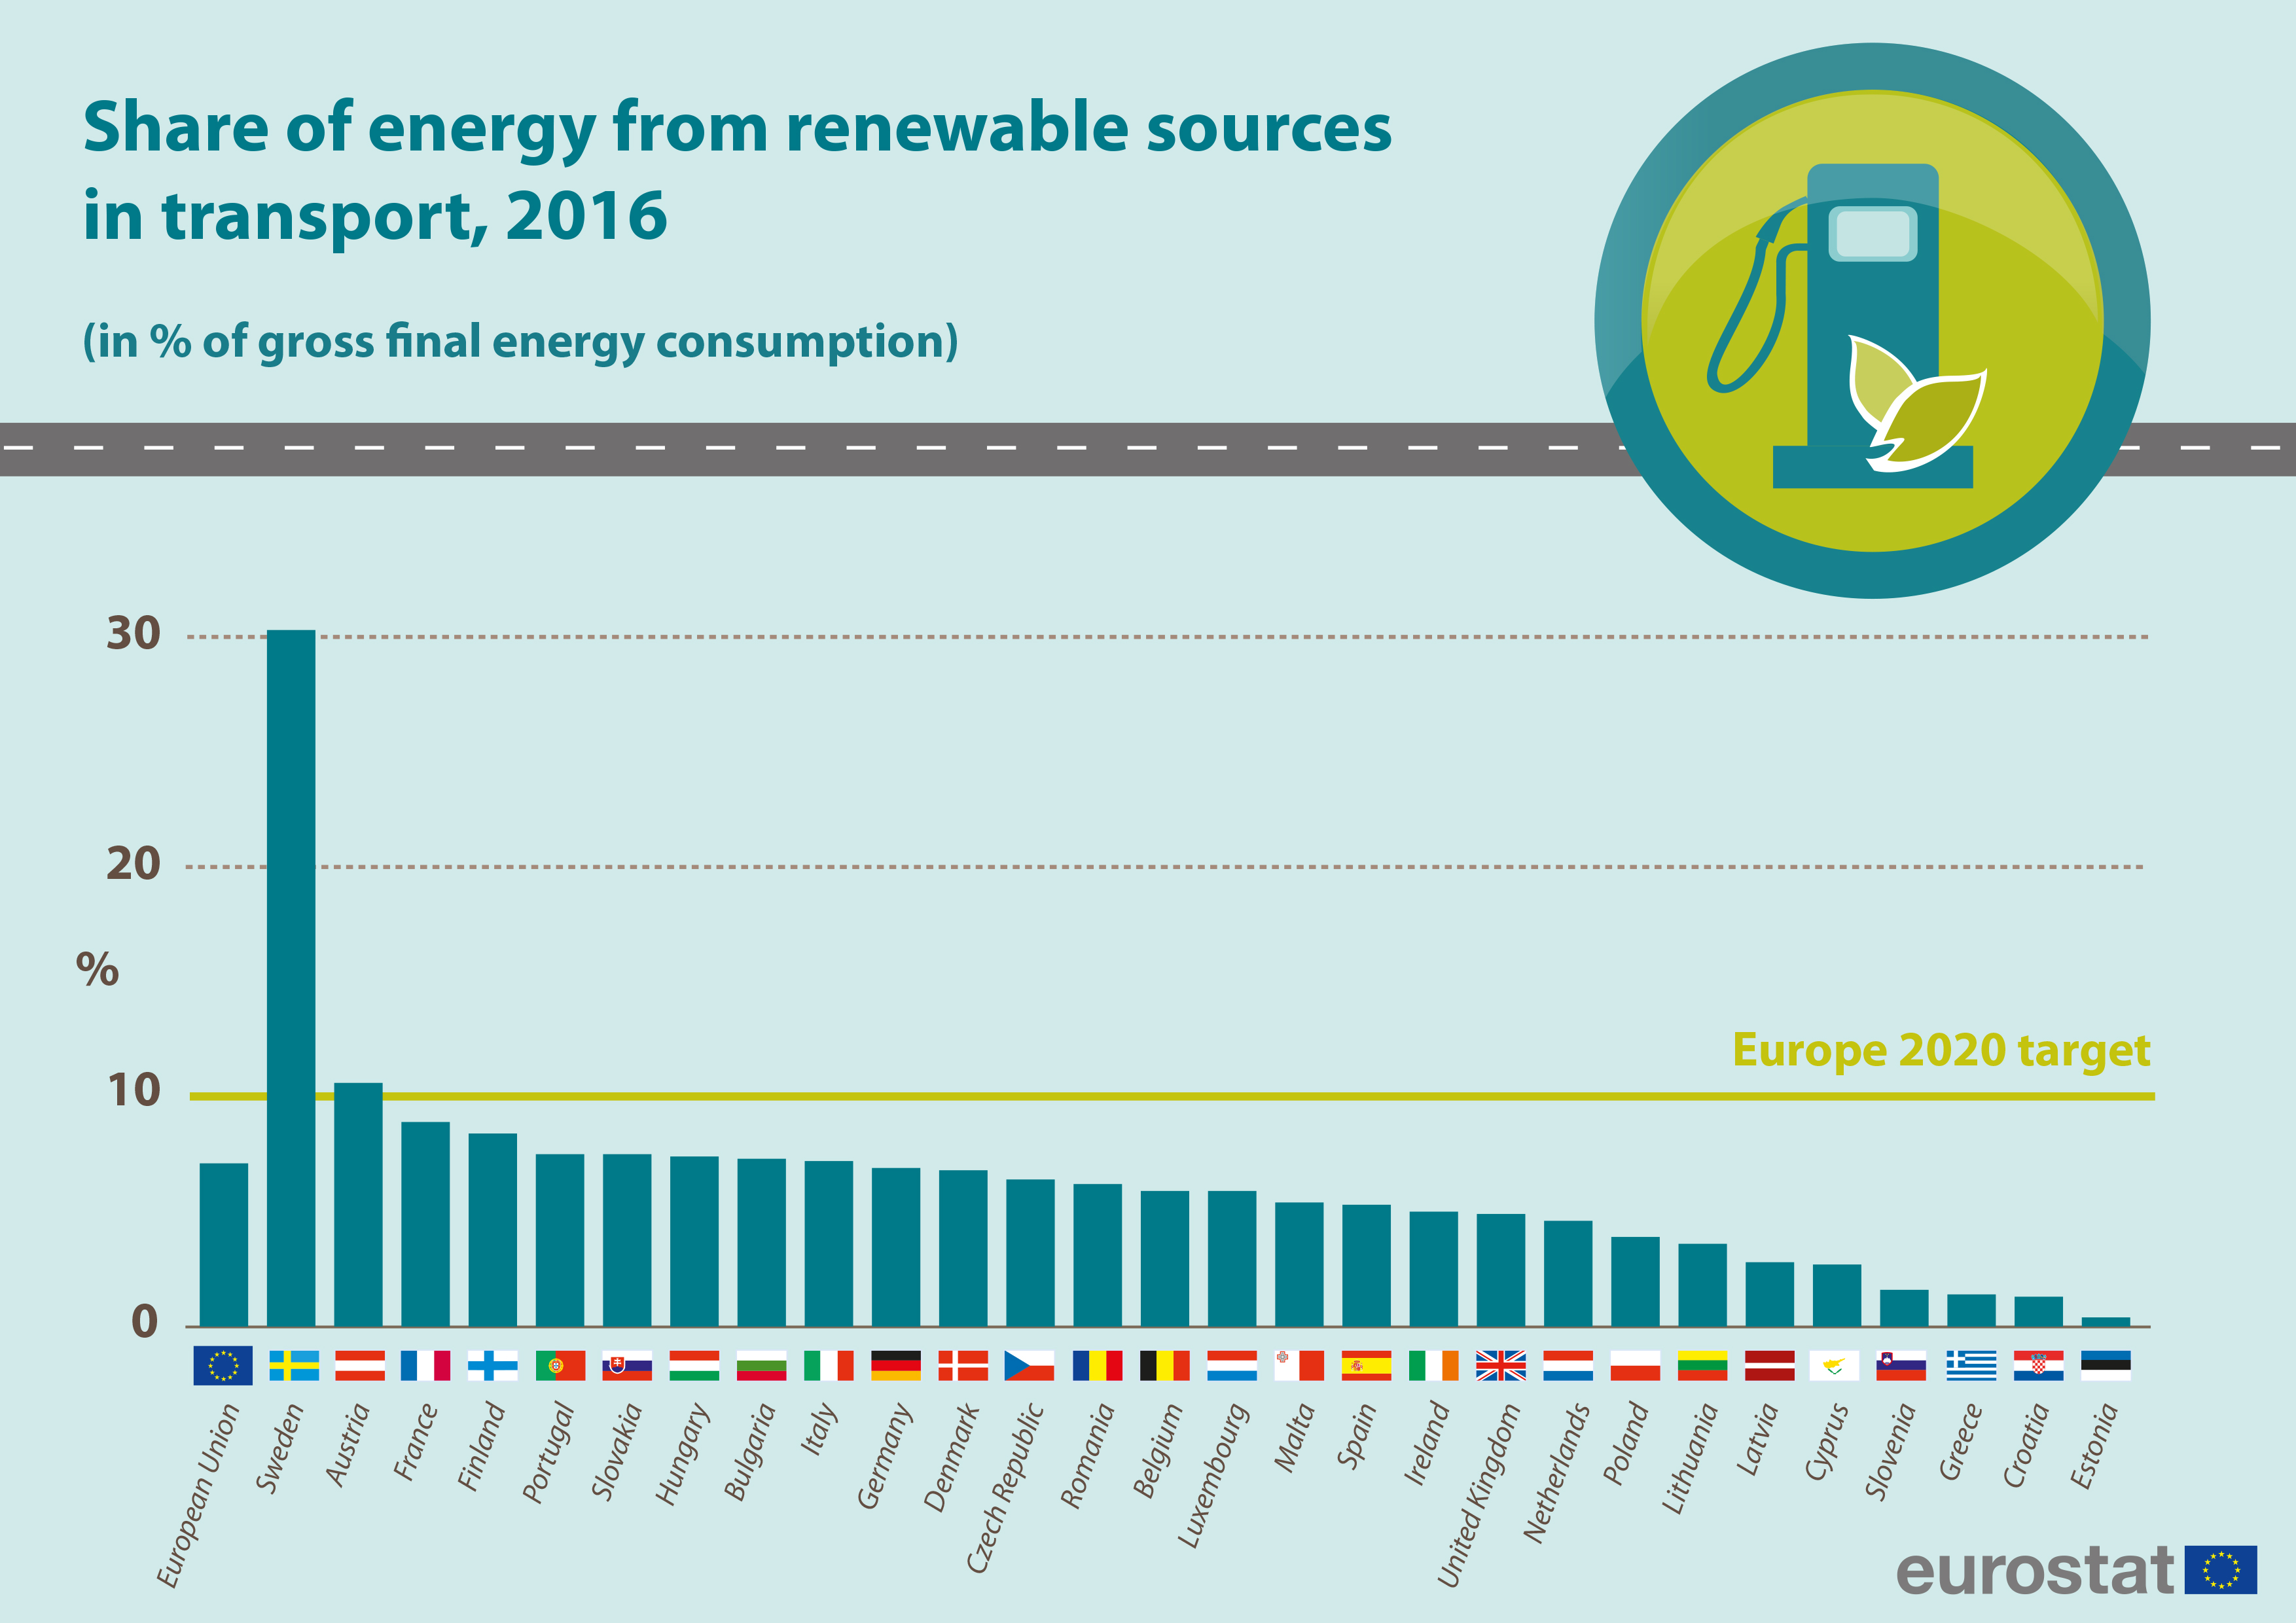 Energy from renewable sources in transport, 2016